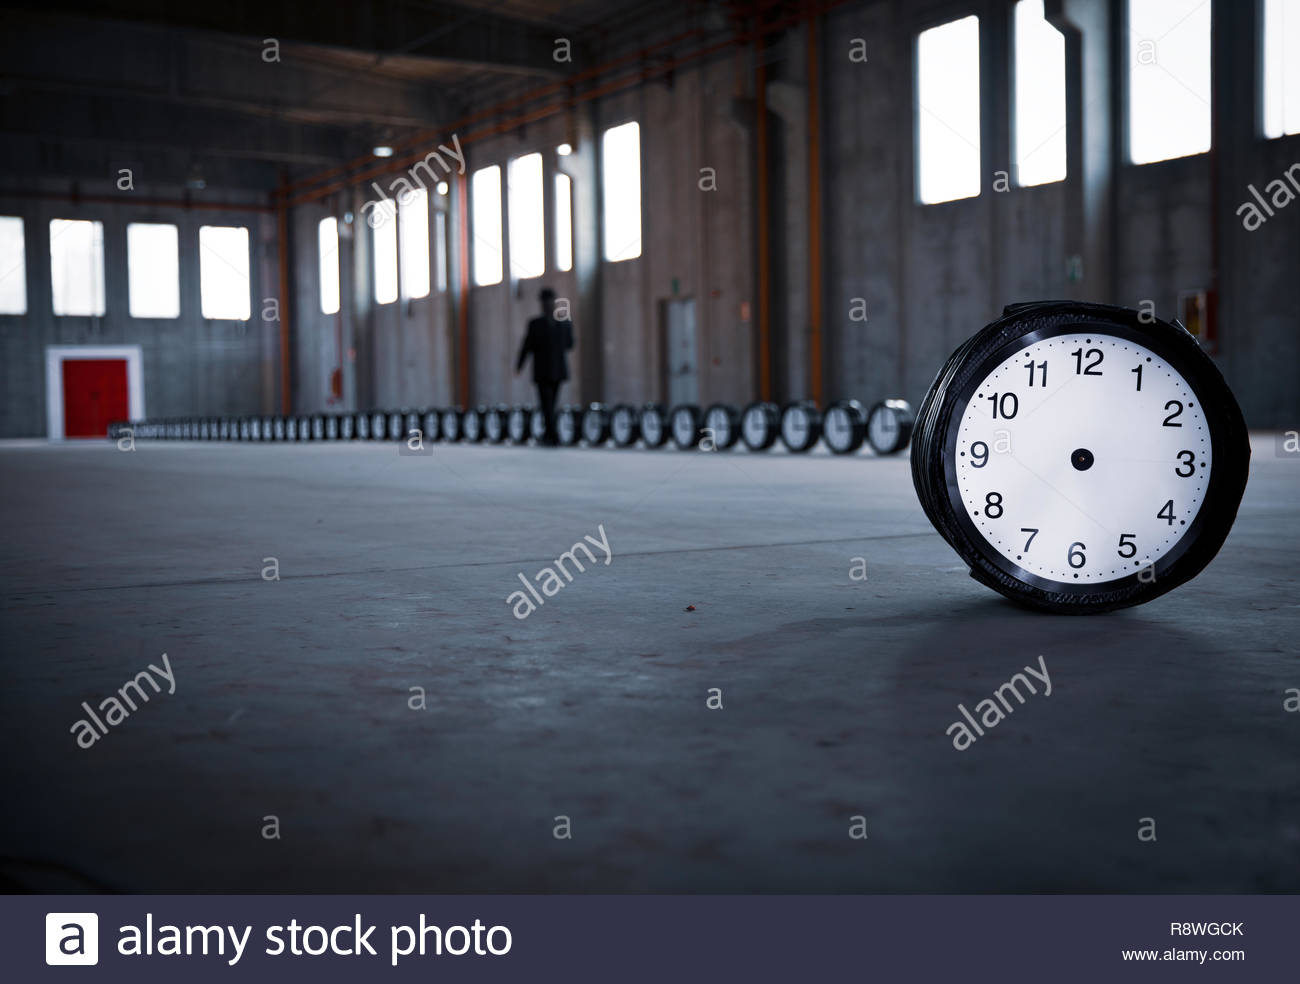 A no-hand clock stands in the foreground, on the right, while a man, dressed in black, is walking alongside a row of 50 clocks in an empty factory. - Stock Image